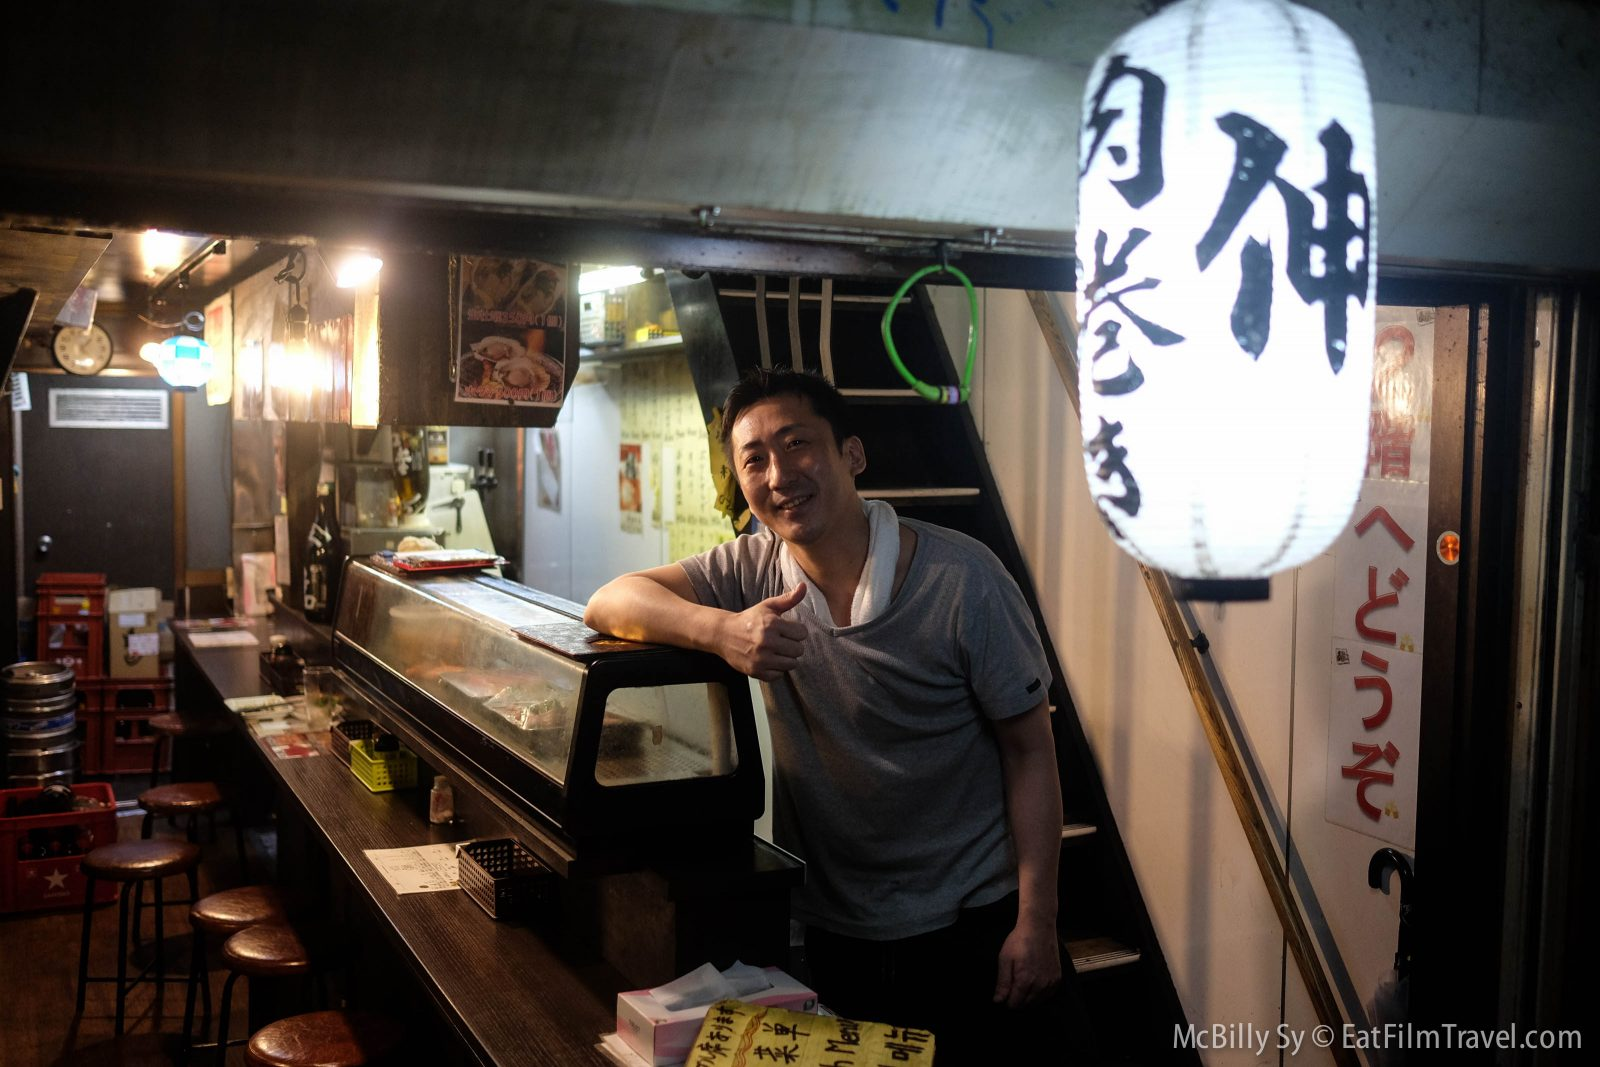 I met Nori who worked in one of the Yakitori restaurants.